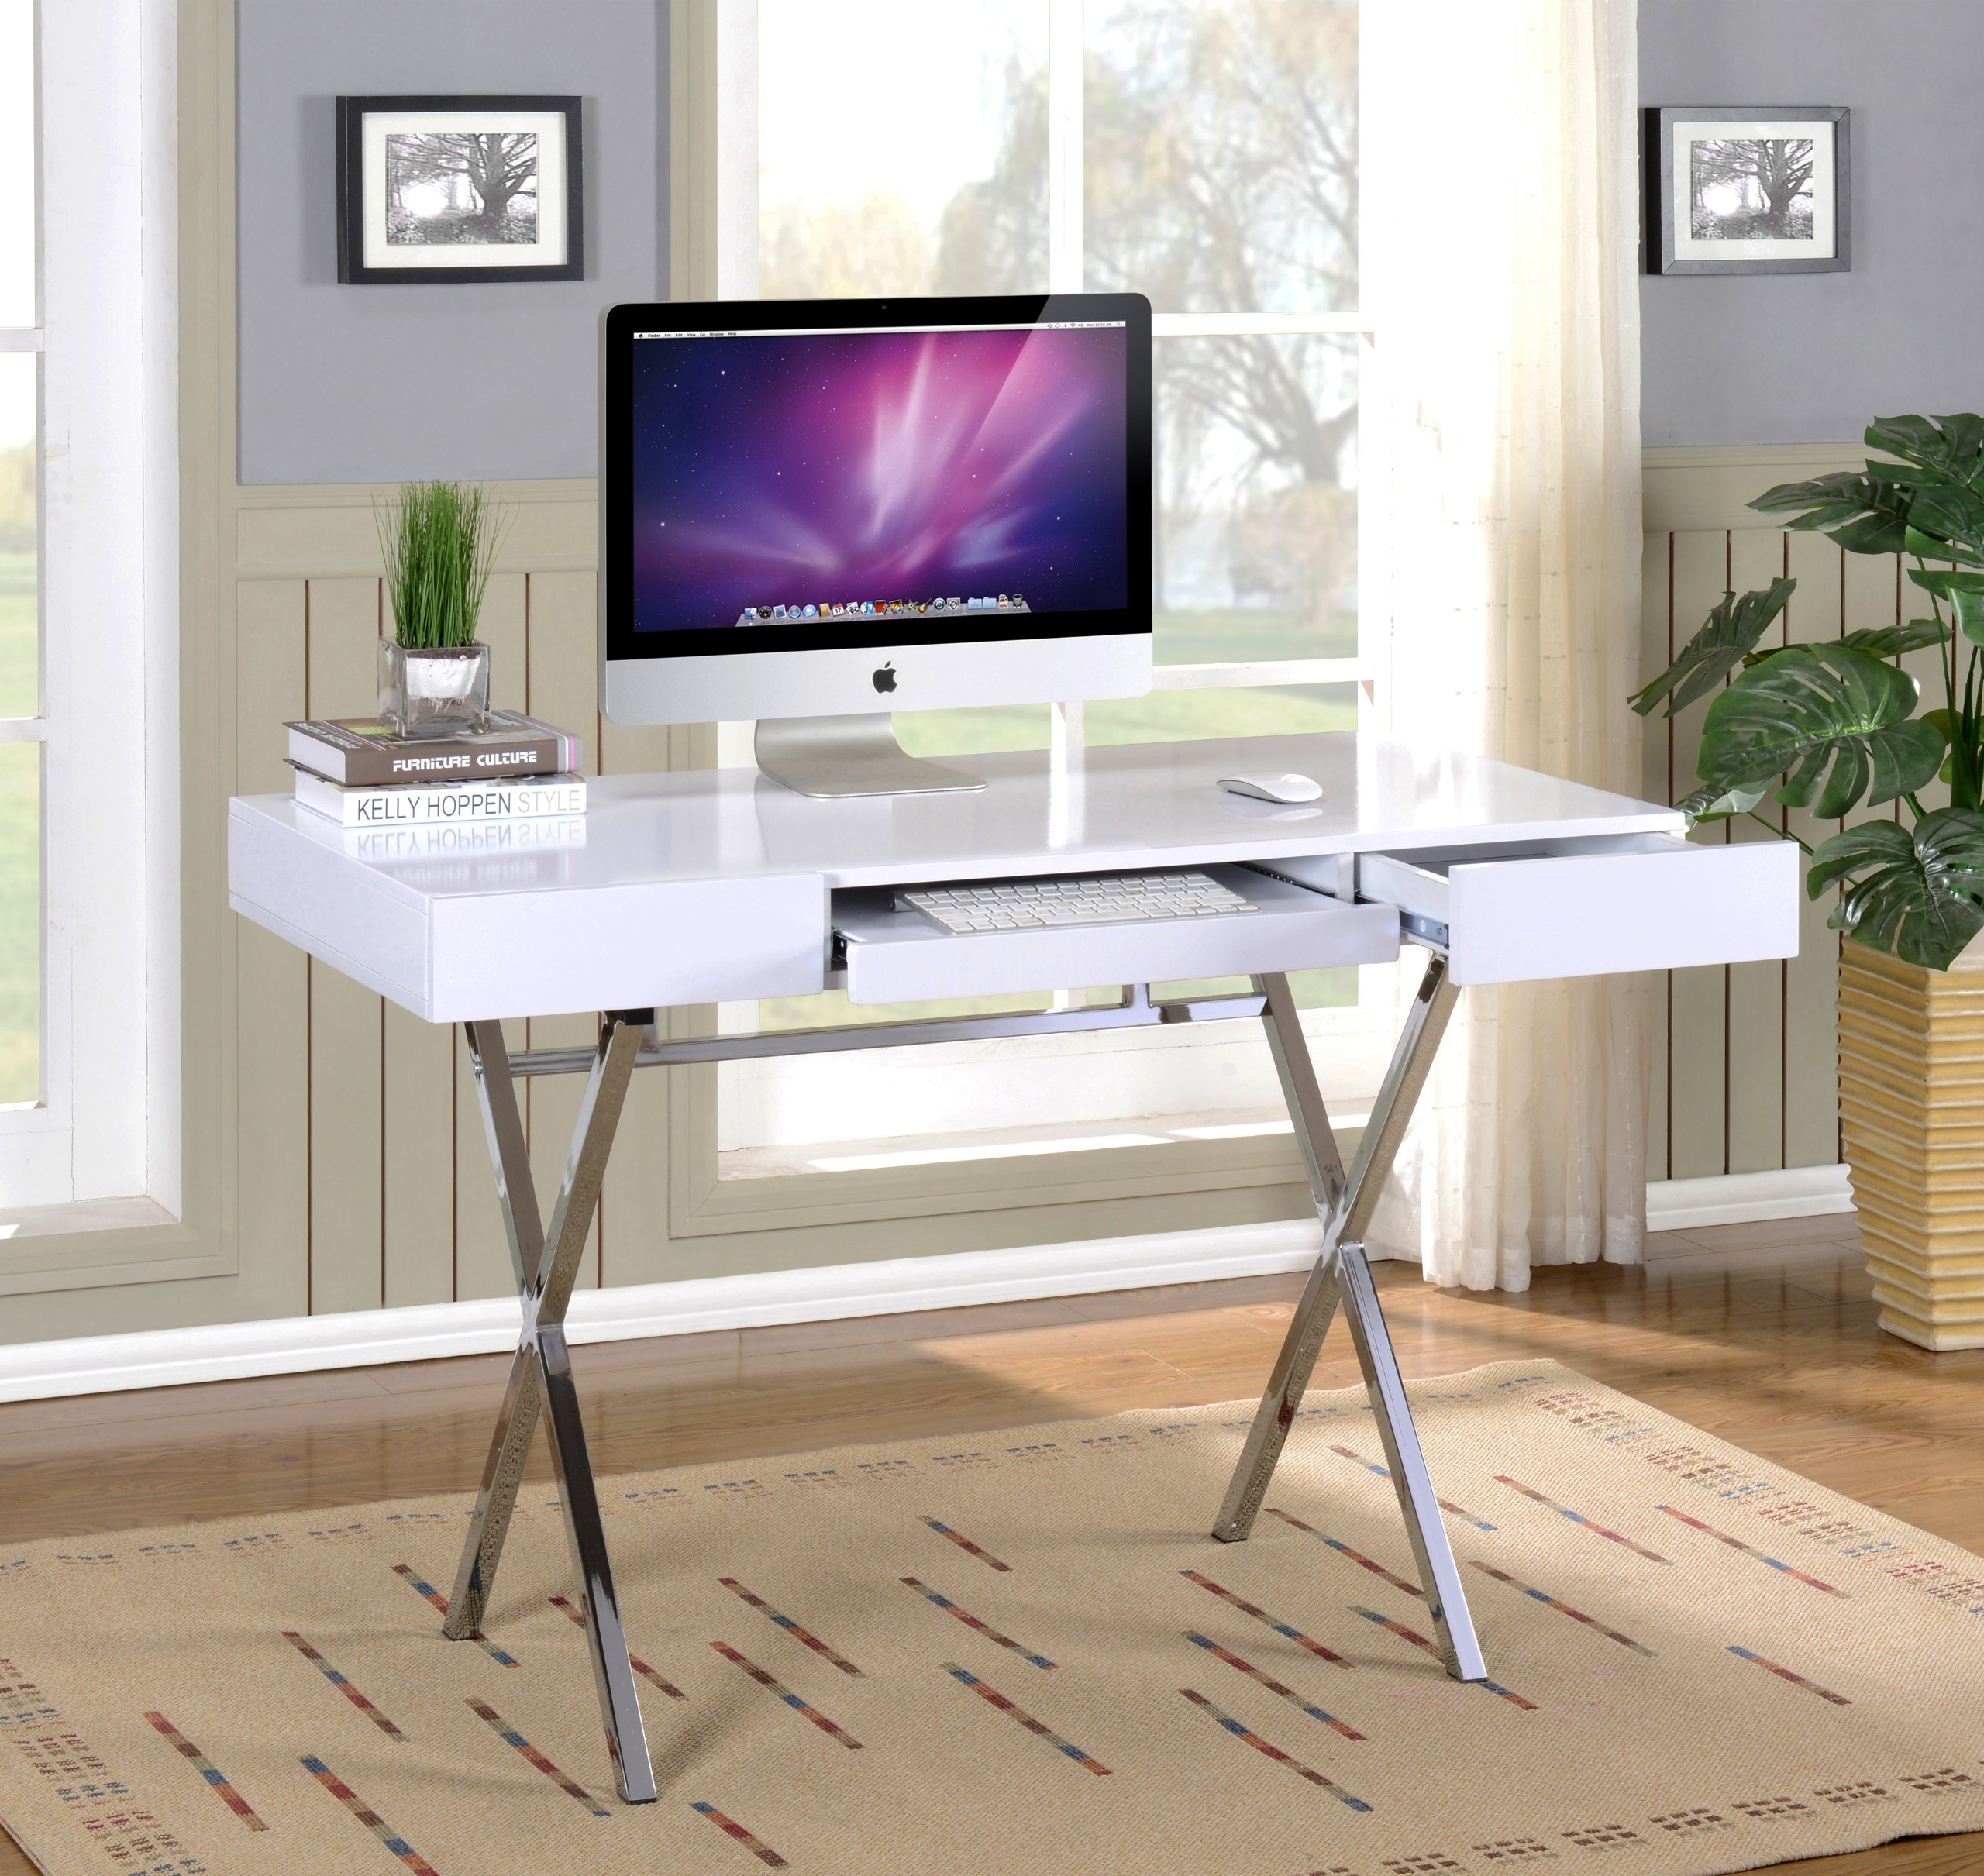 Kings Brand Furniture Contemporary Style Home & Office Desk, White/Chrome - Kings Brand Contemporary Style White With Chrome Finish Legs Home & Office Desk The computer desk in an X design creates a modern looking unit that is ready to help you tackle your daily tasks Computer desk in a white glossy finish with a pullout keyboard tray - writing-desks, living-room-furniture, living-room - 91qKBC0Z1NL -